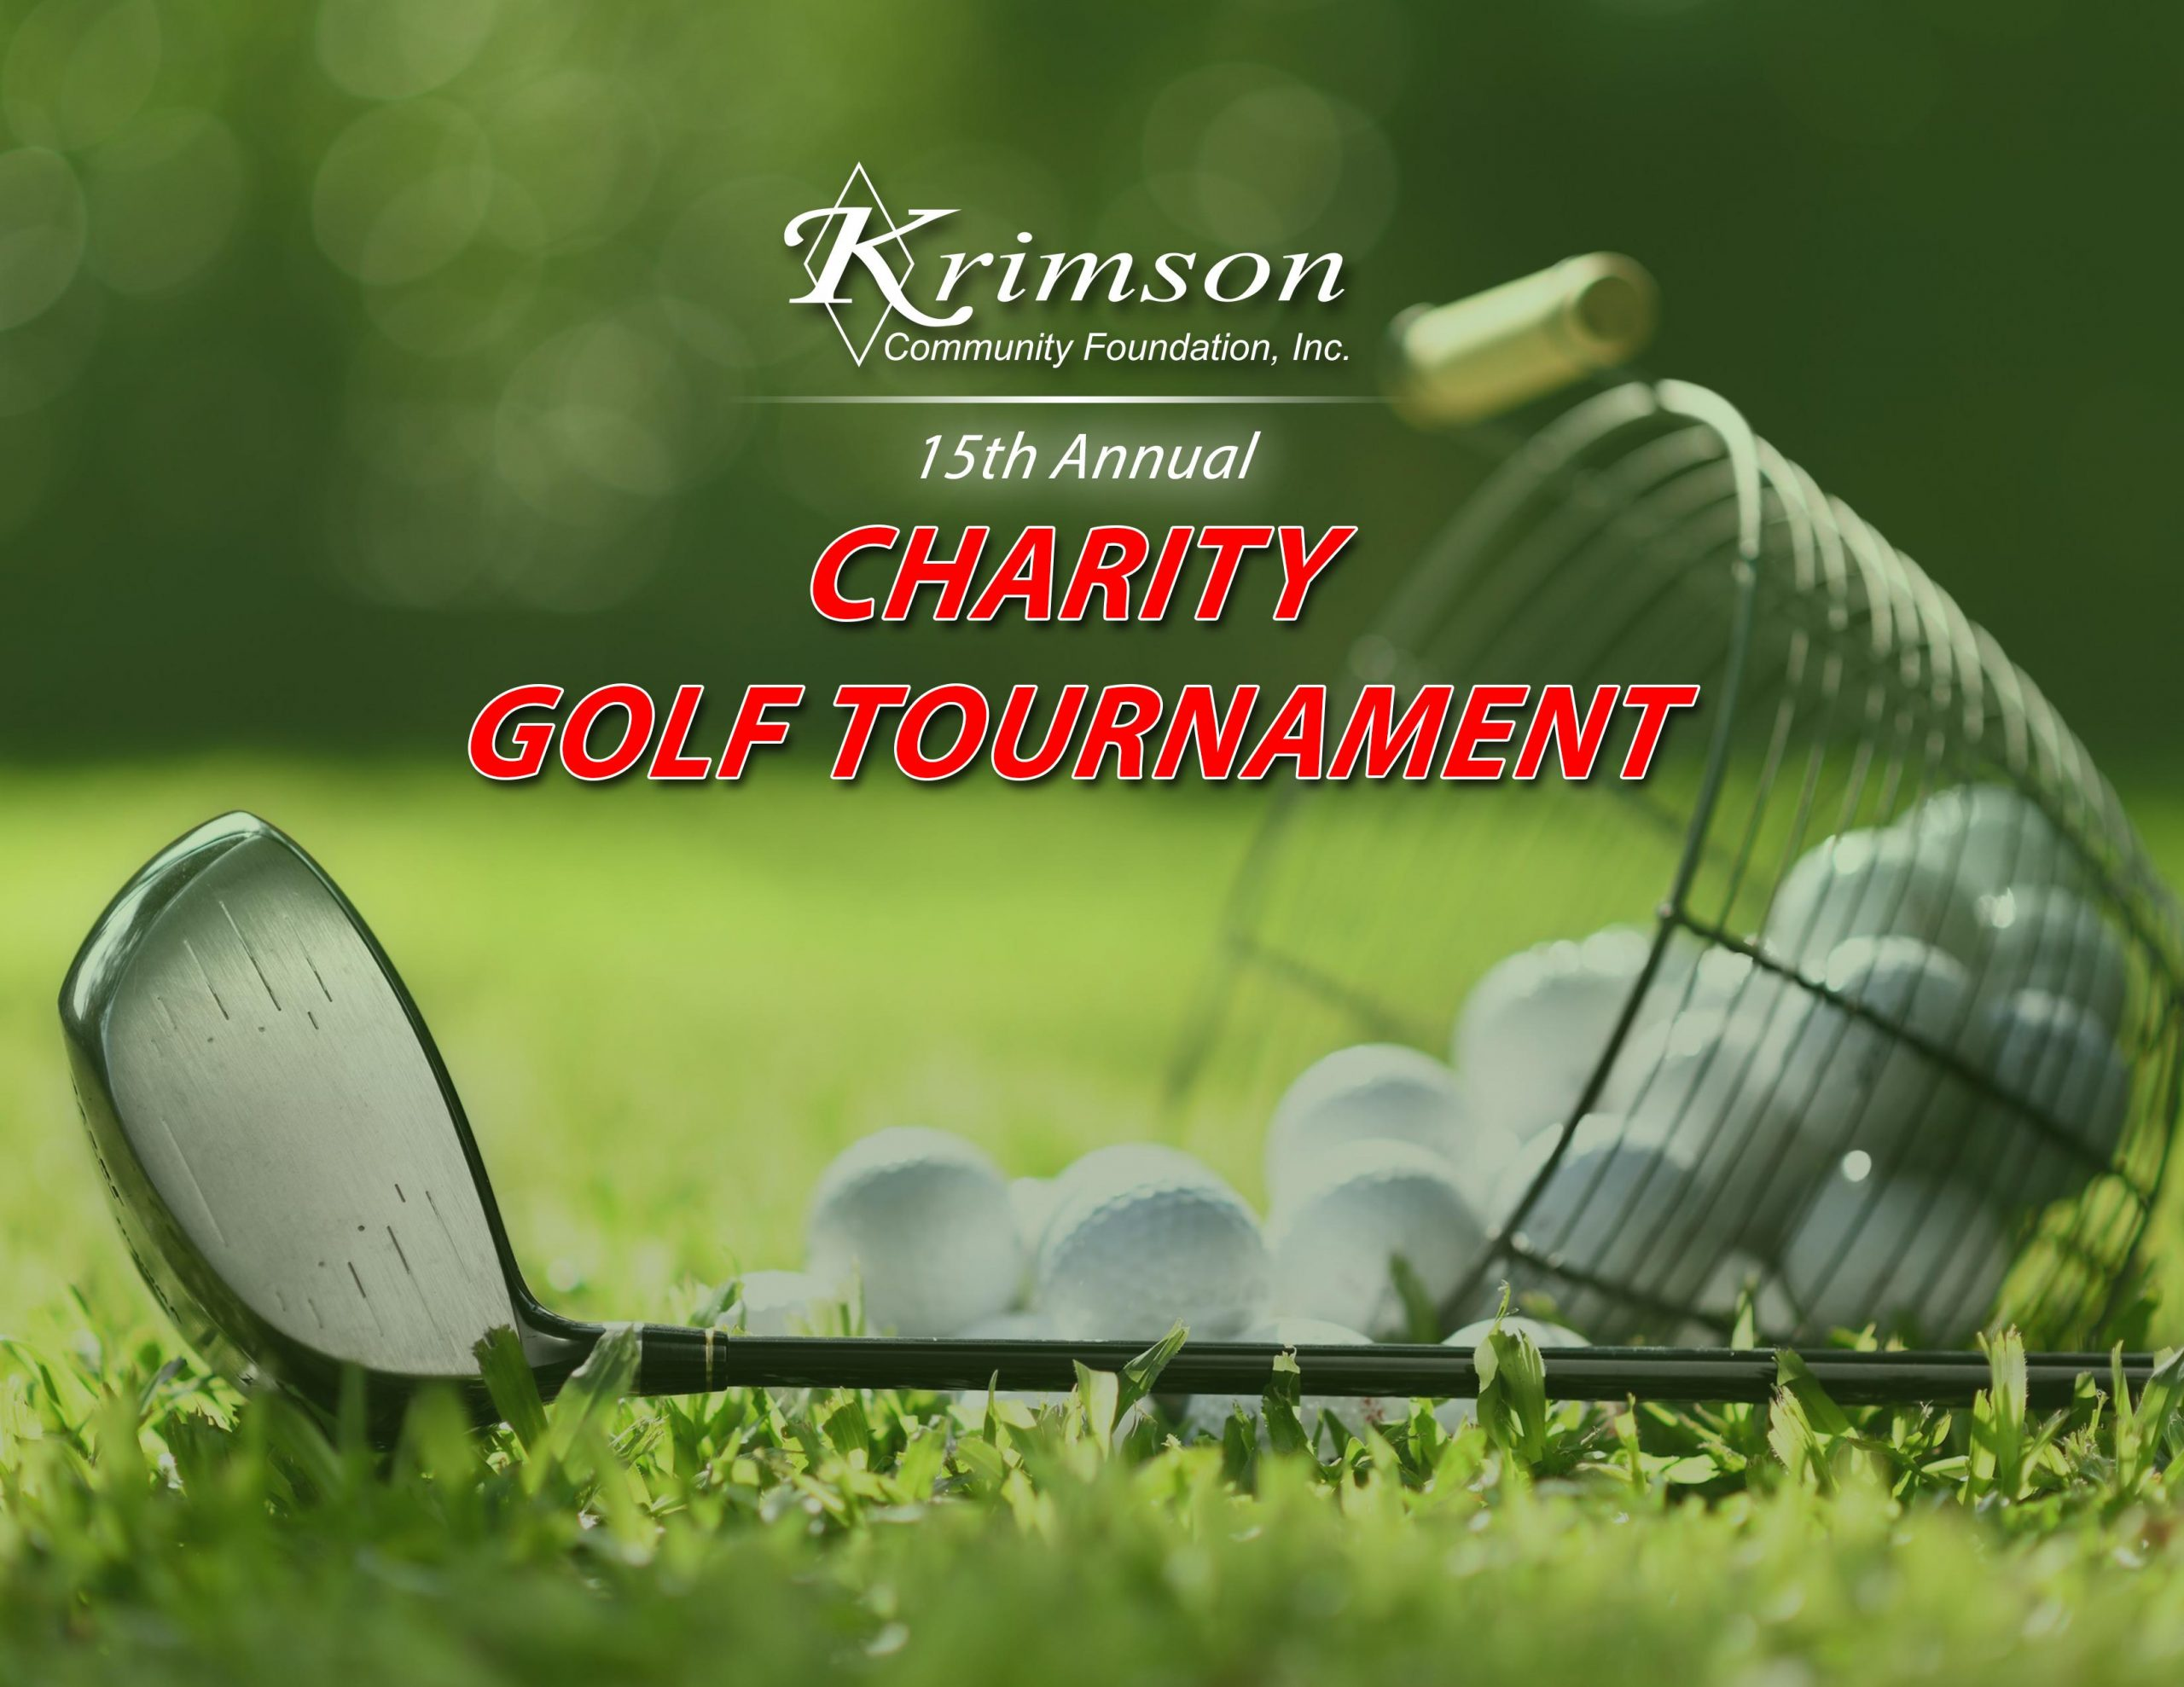 2020 Annual Krimson Community Foundation Charity Golf Tournament